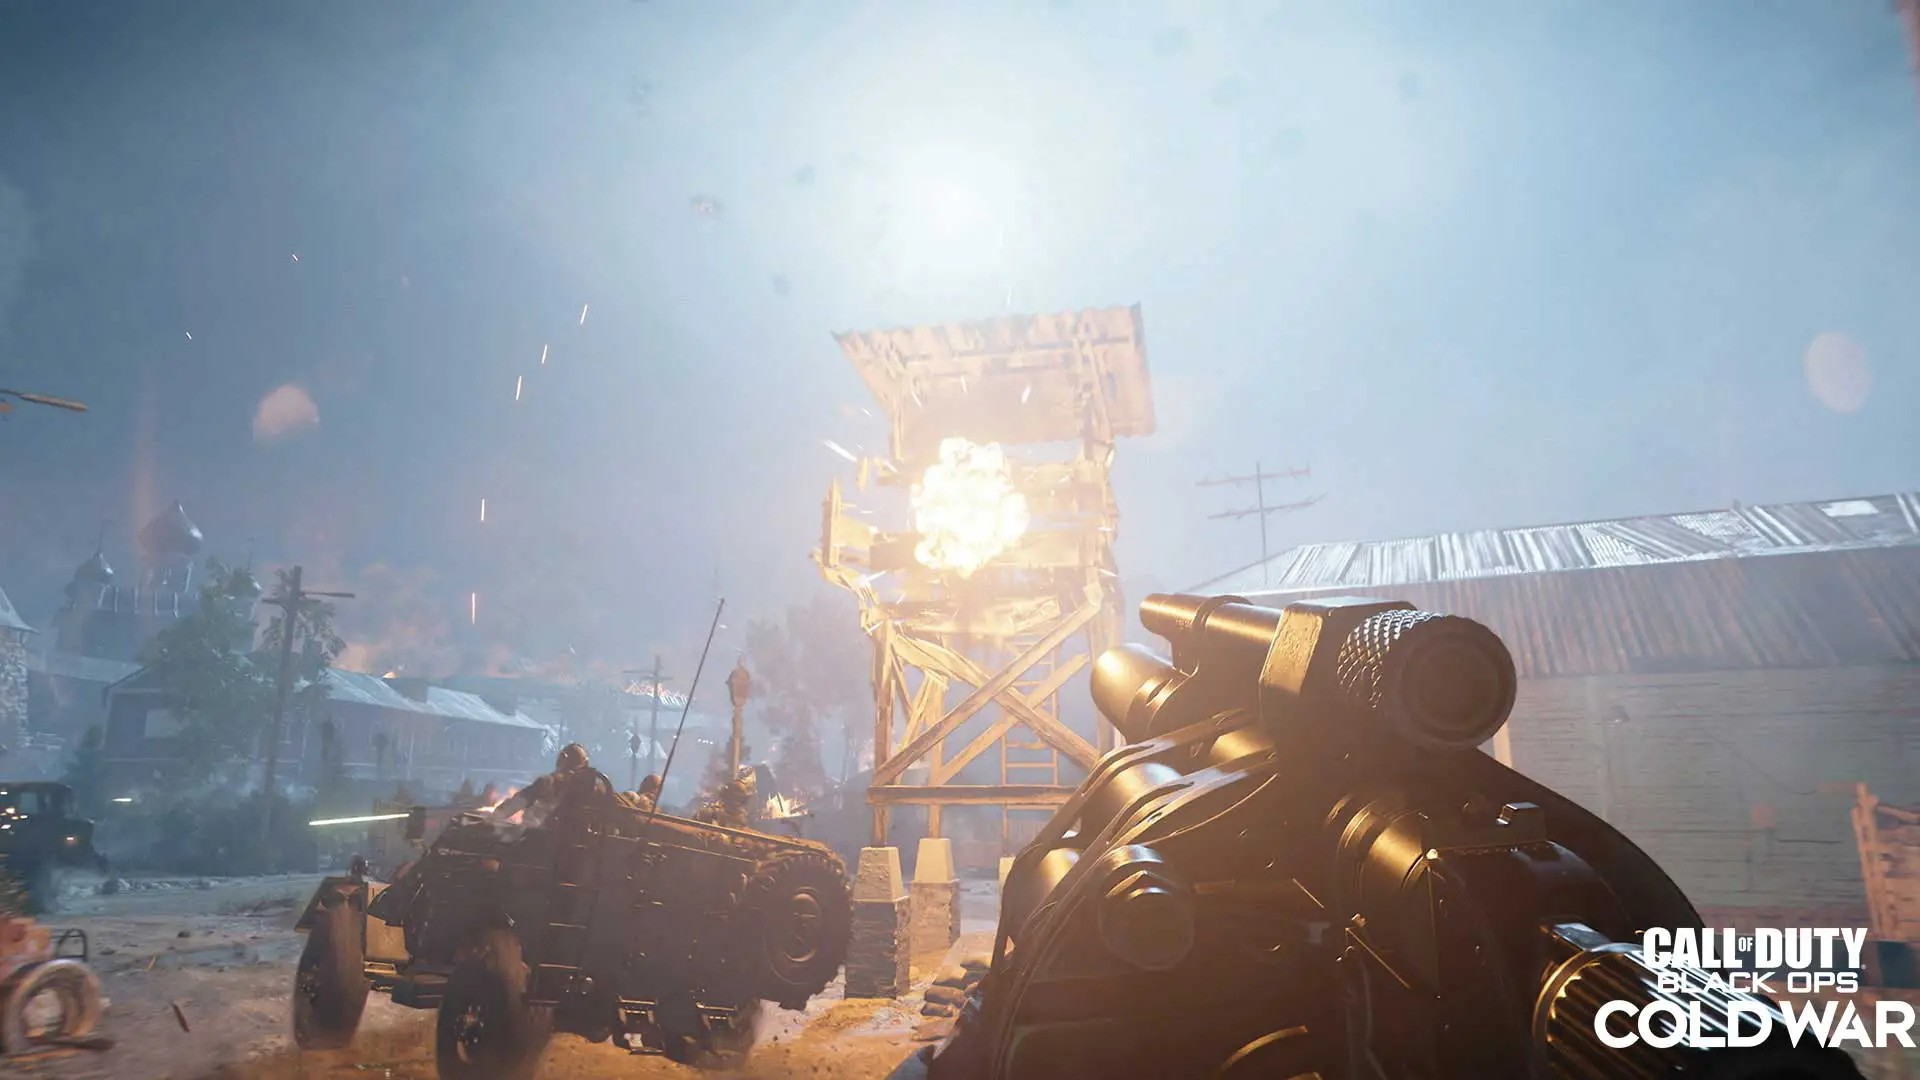 Black Ops Cold War & Modern Warfare loadouts to be accessible in Warzone